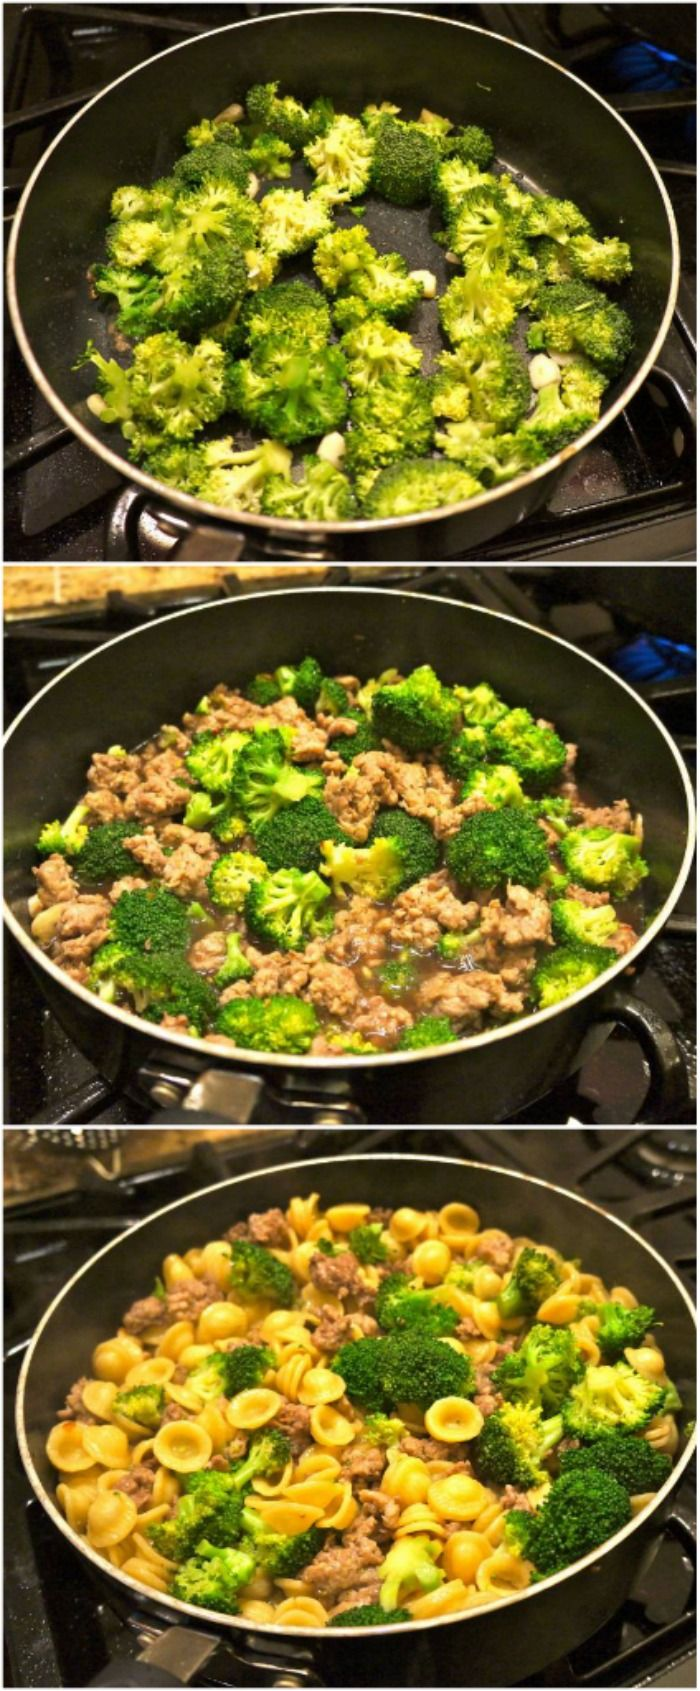 Sausage and broccoli orecchiette